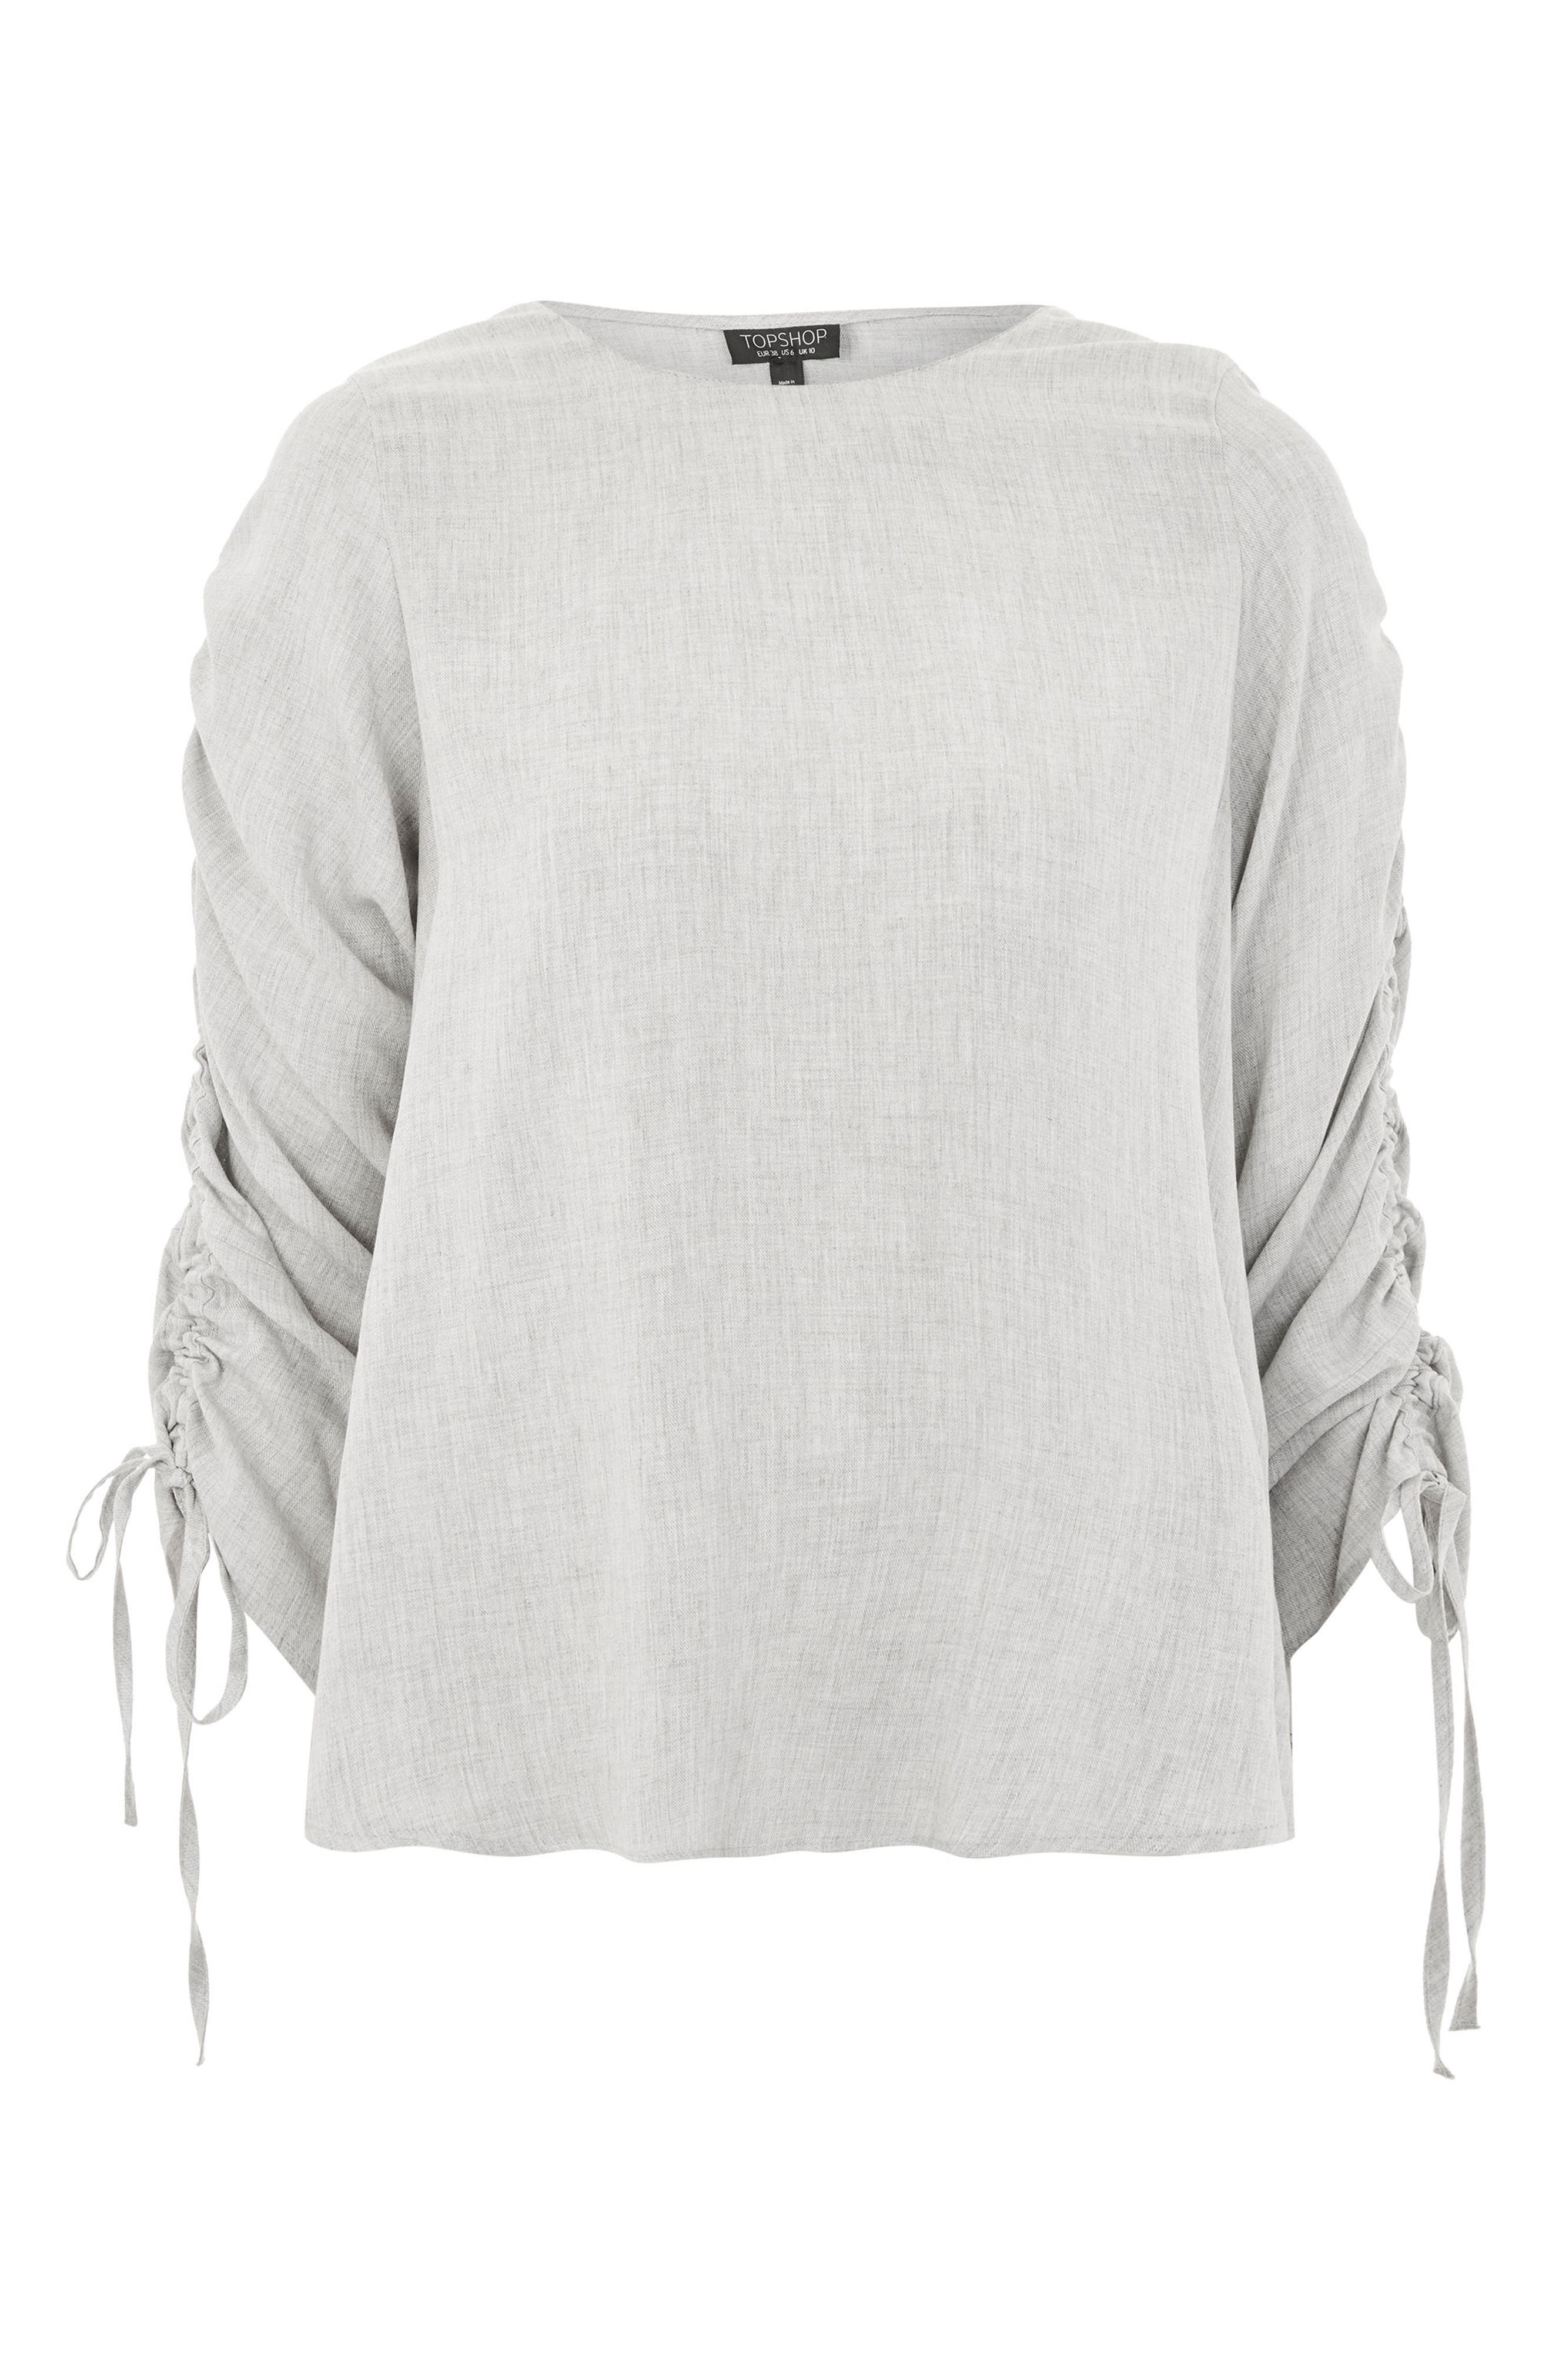 Ruched Sleeve Shirt,                             Alternate thumbnail 4, color,                             Grey